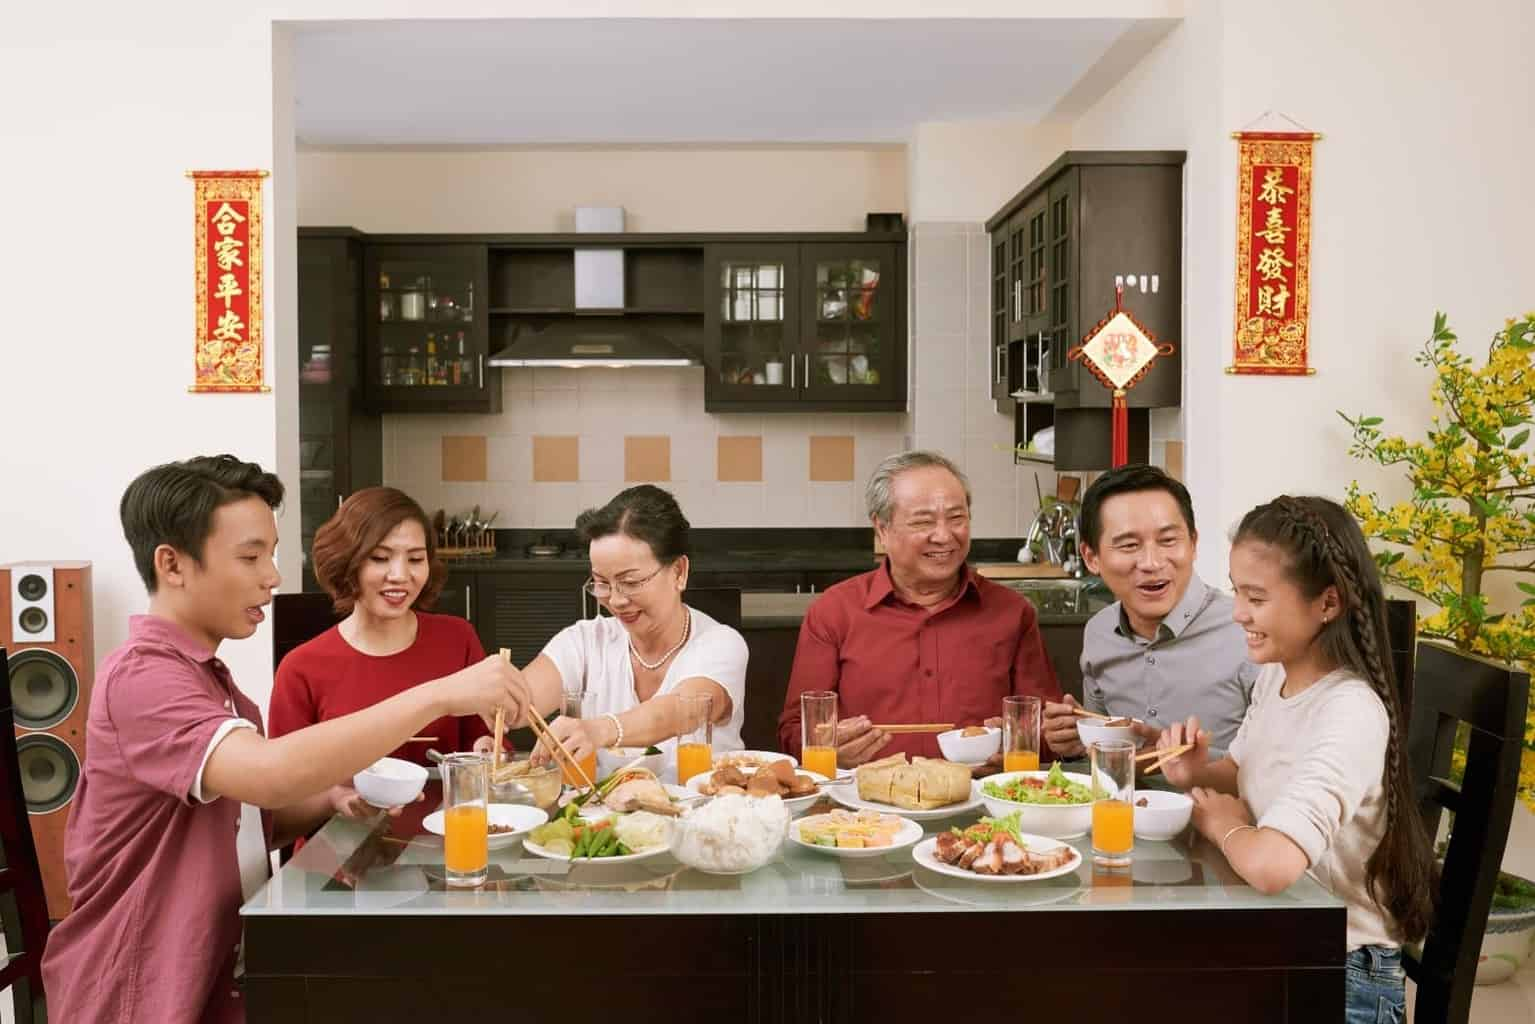 parenting tips - family eating together